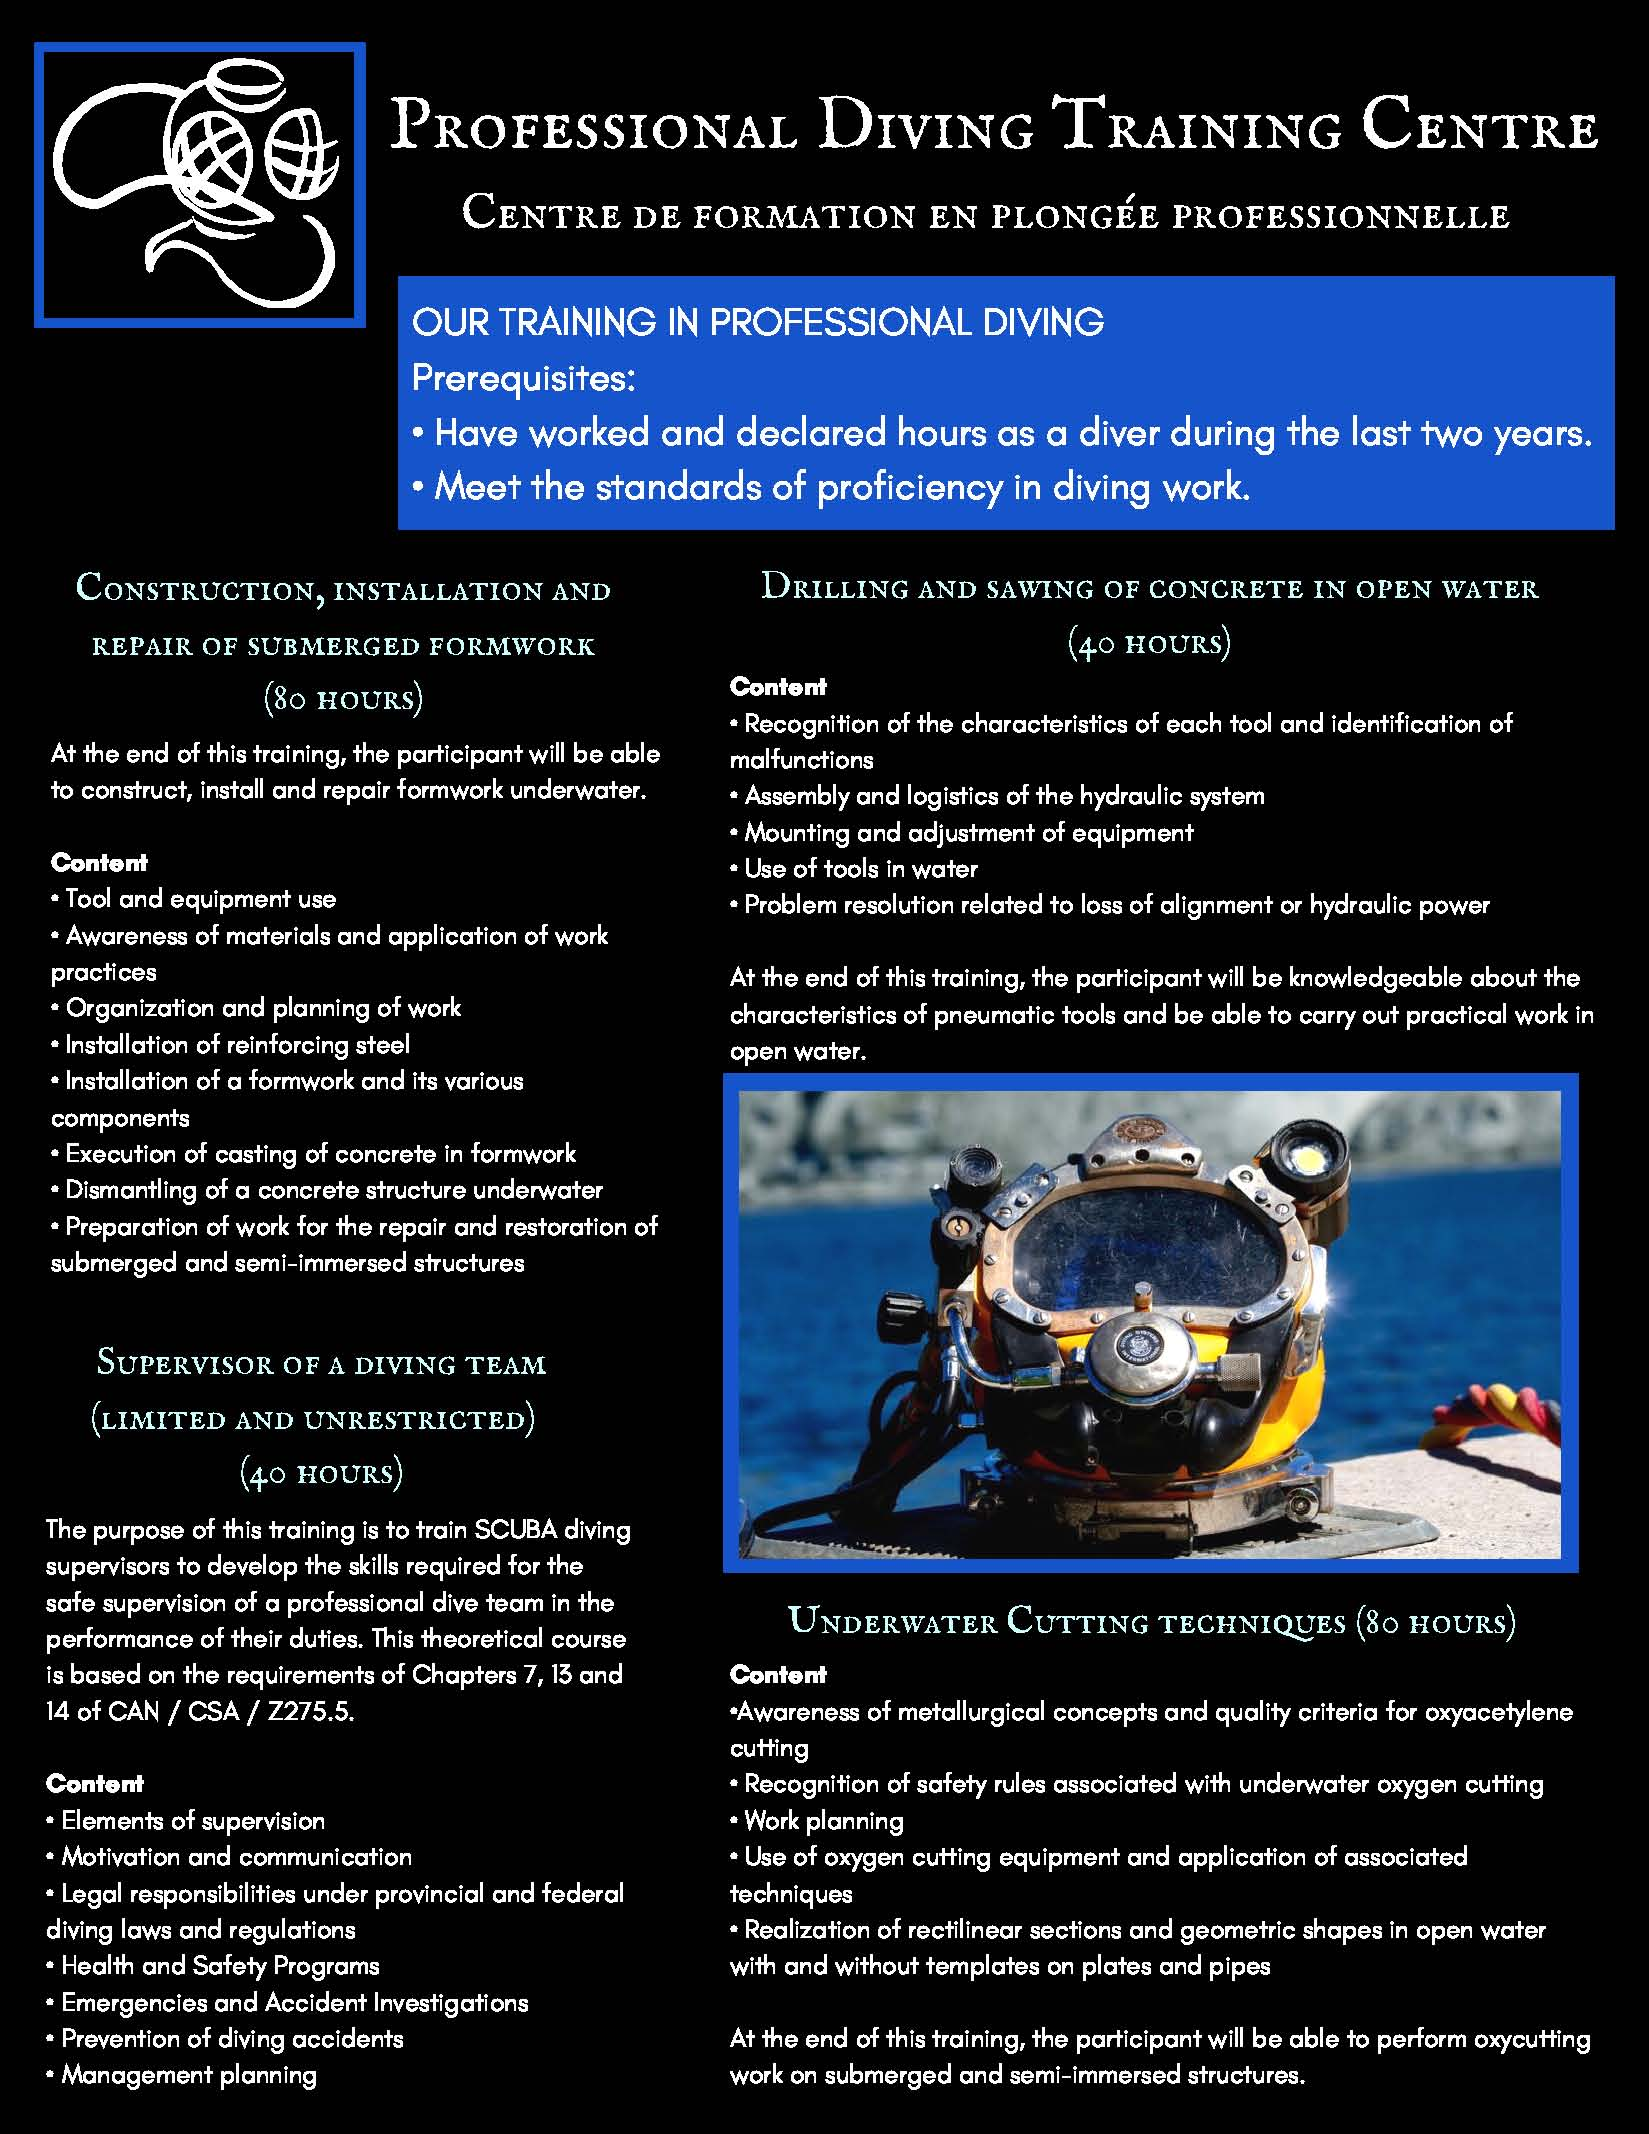 Professional Diving Training Center Centre de formation en plongée professionnelle 7 1 Page 1